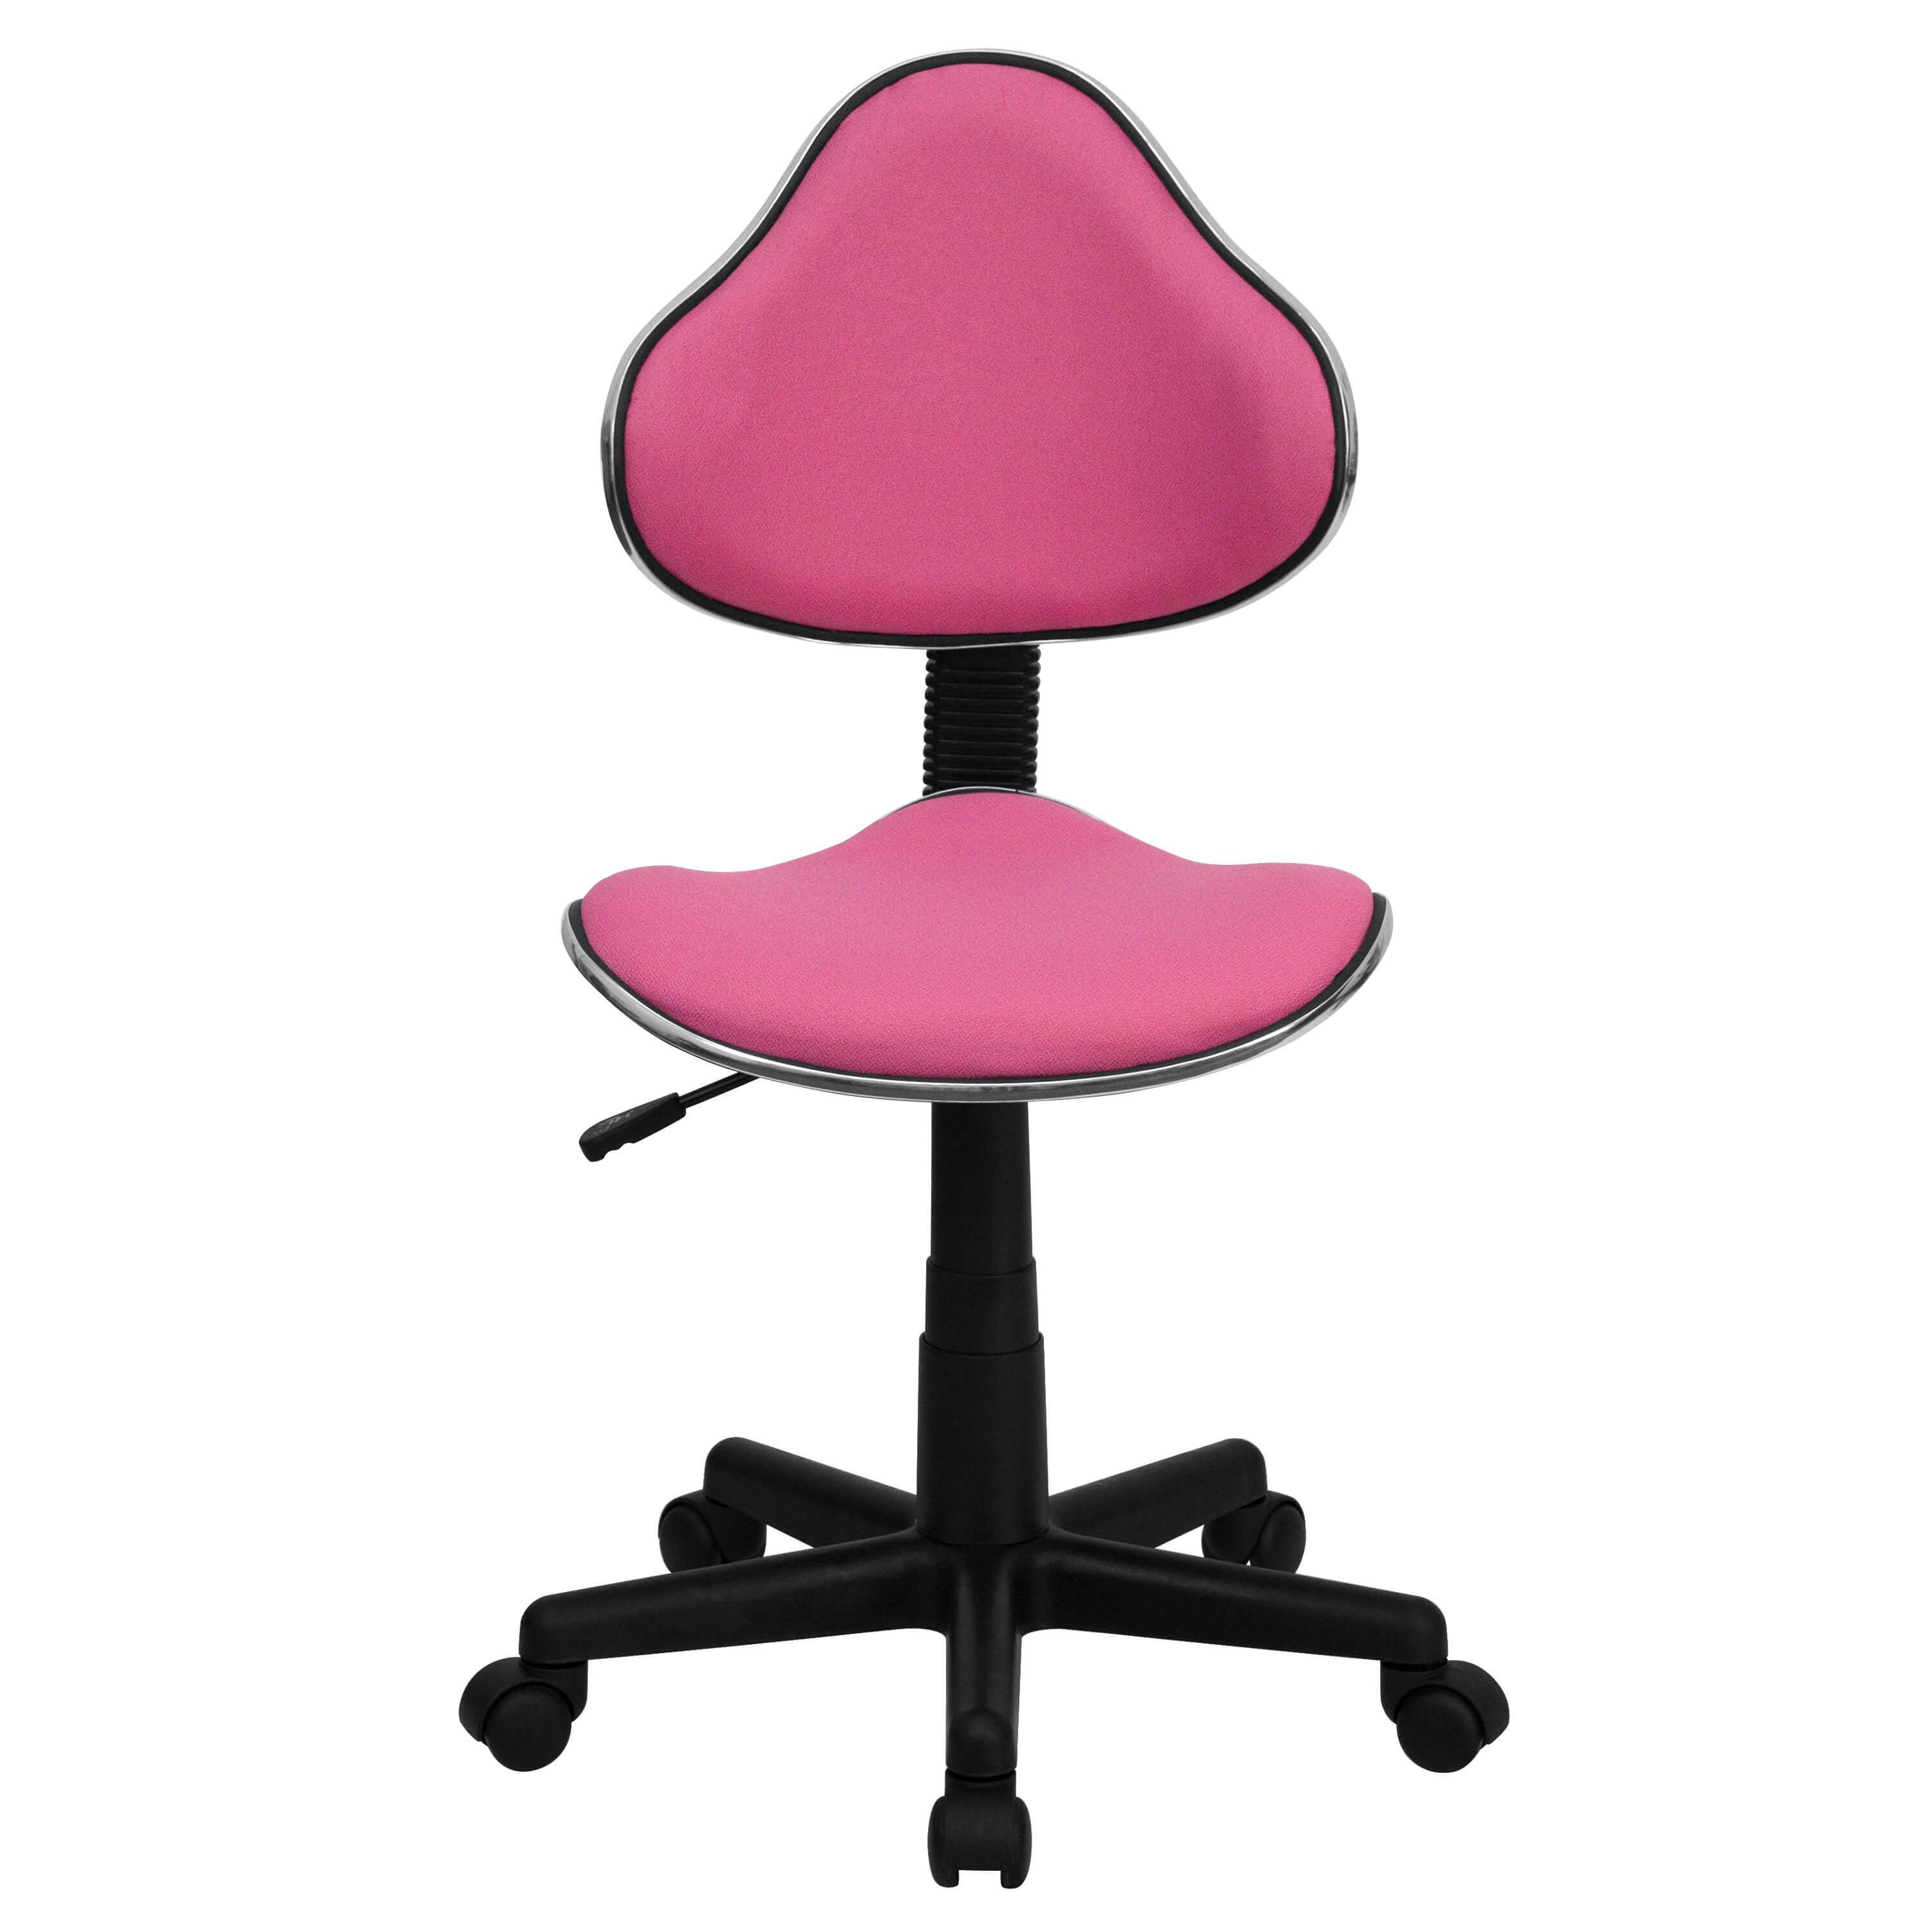 Colorful desk chairs CUB BT 699 PINK GG FLA